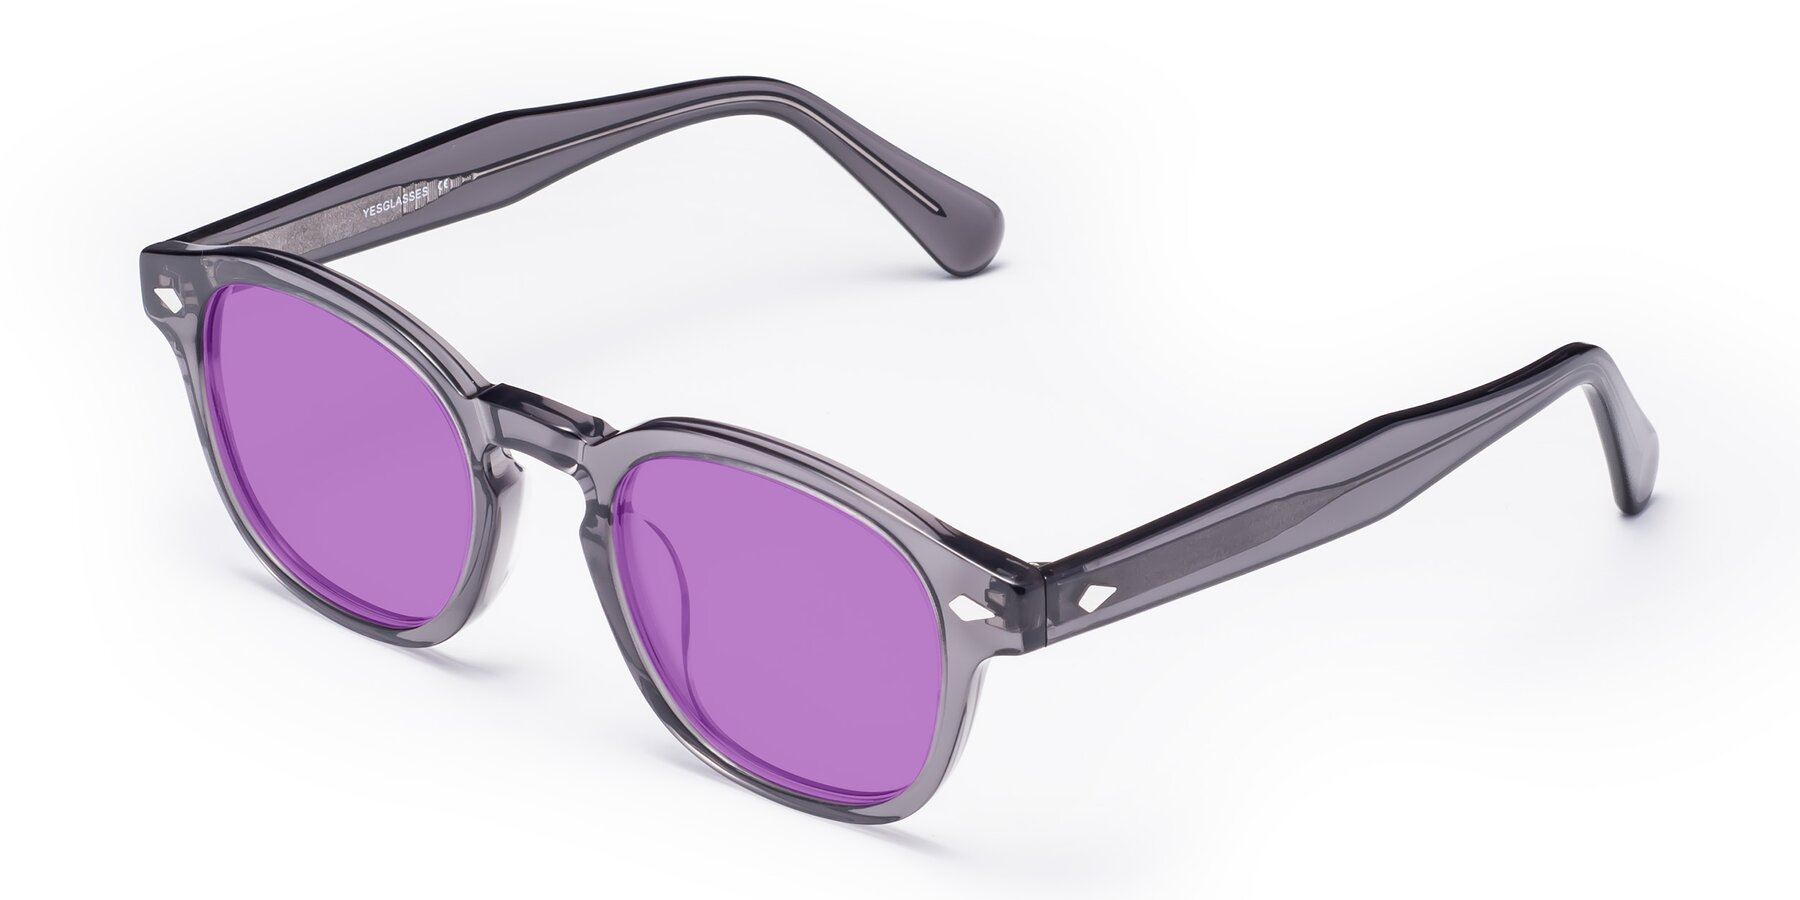 Angle of WALL-E in Translucent Gray with Medium Purple Tinted Lenses